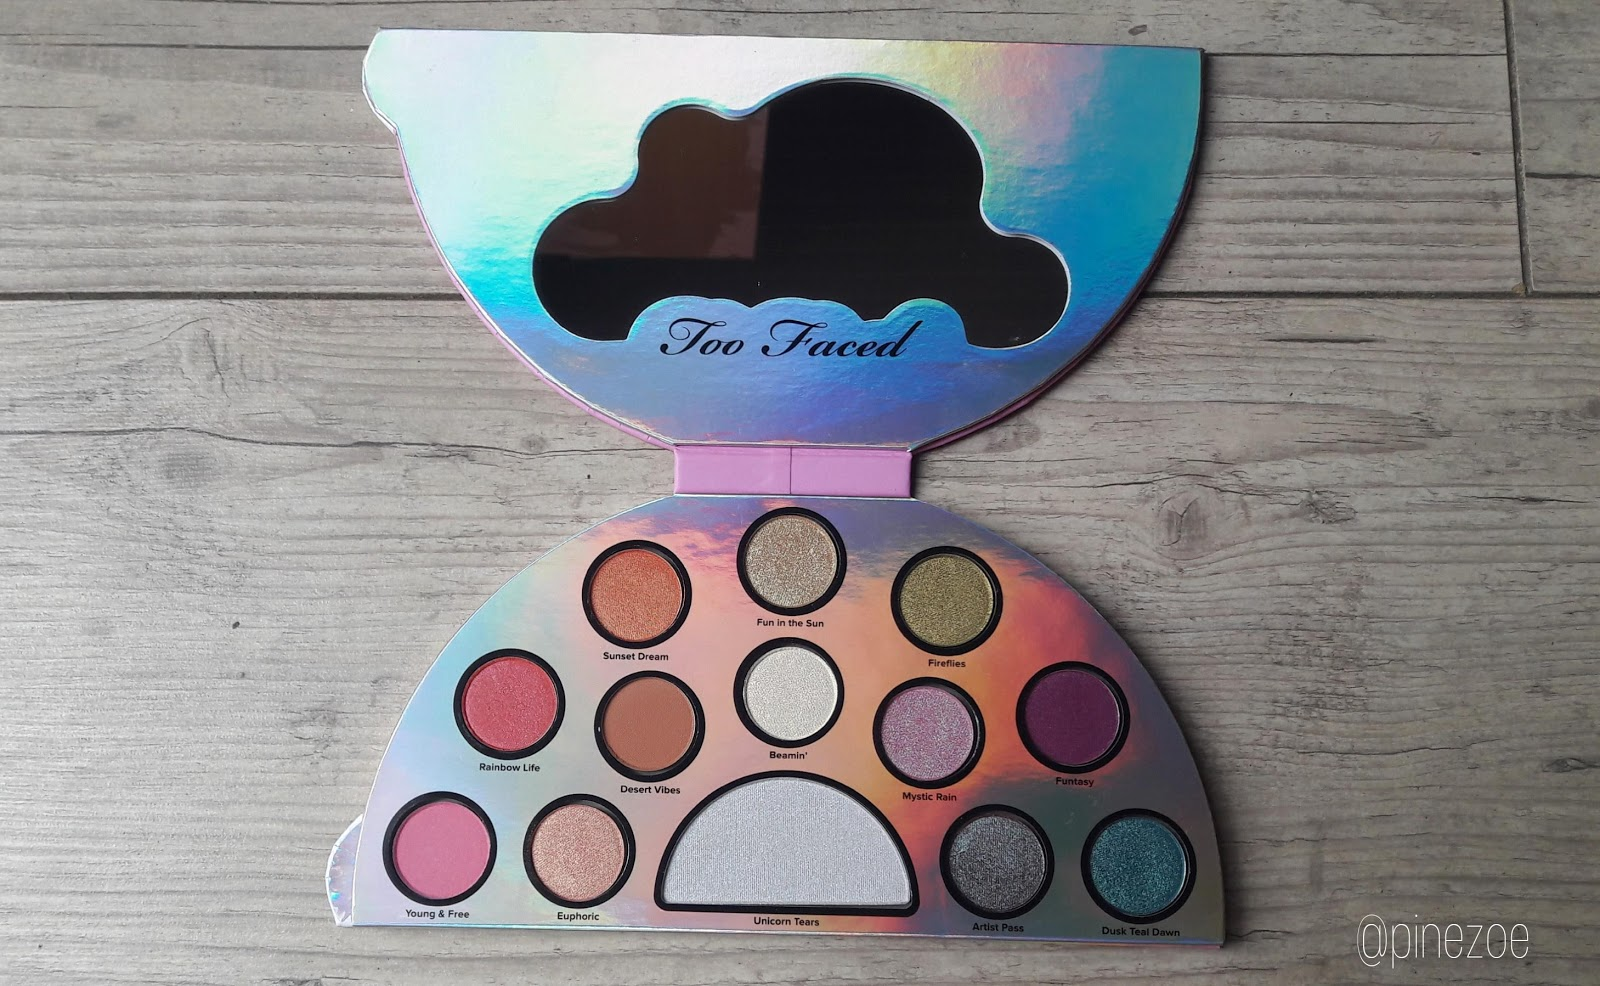 Lifet's a Festival 🦄 Too Faced